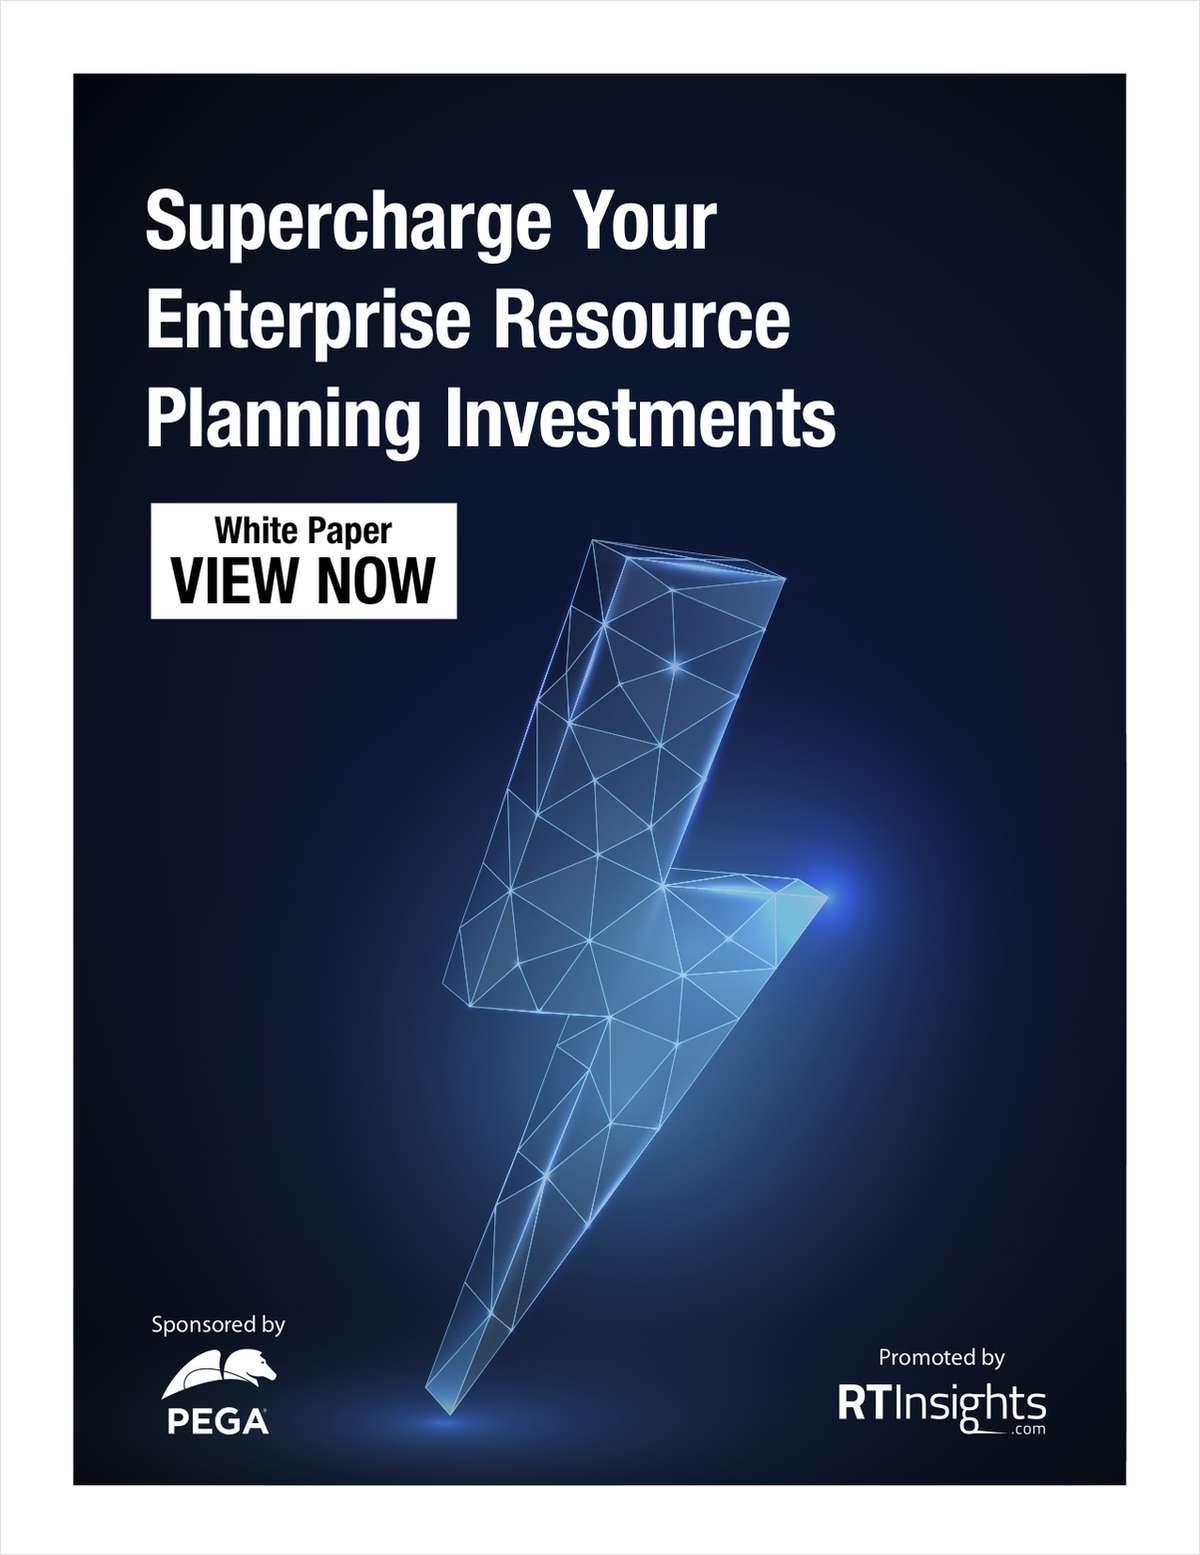 Supercharge Your Enterprise Resource Planning Investments